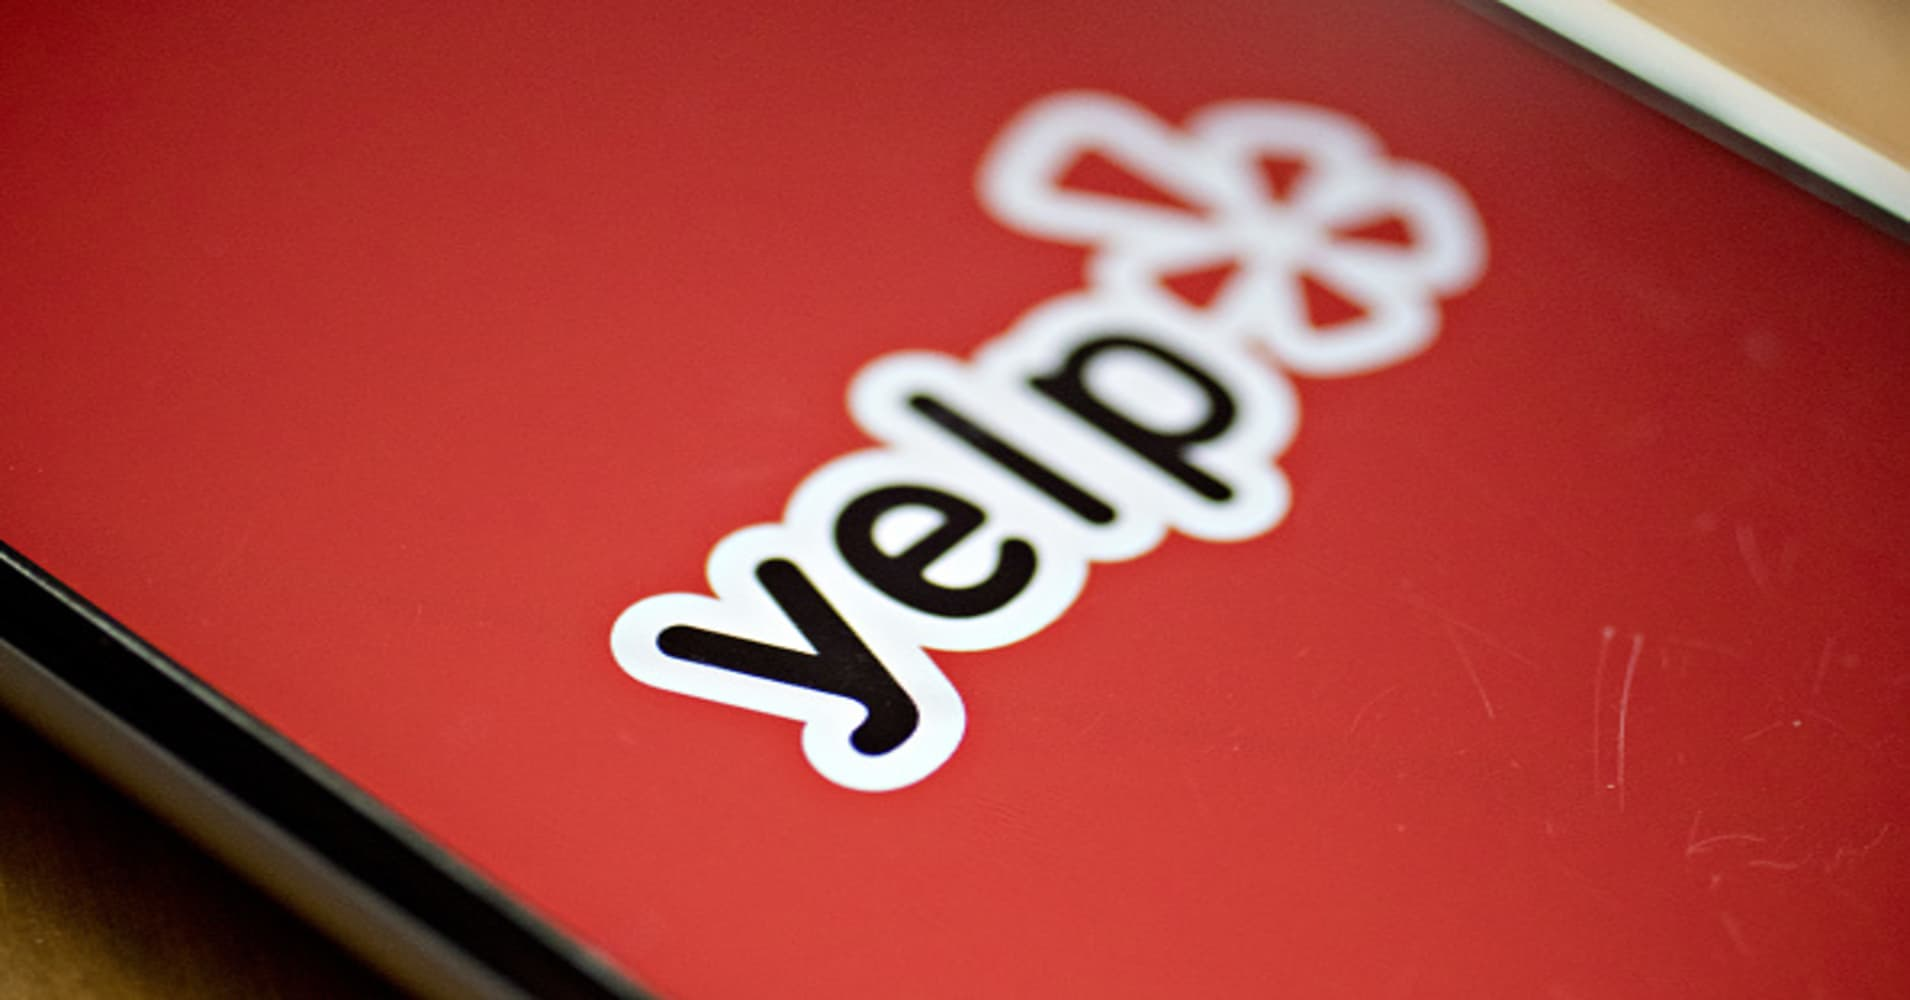 Yelp Is Fundamentally Challenged Says Mark Mahaney